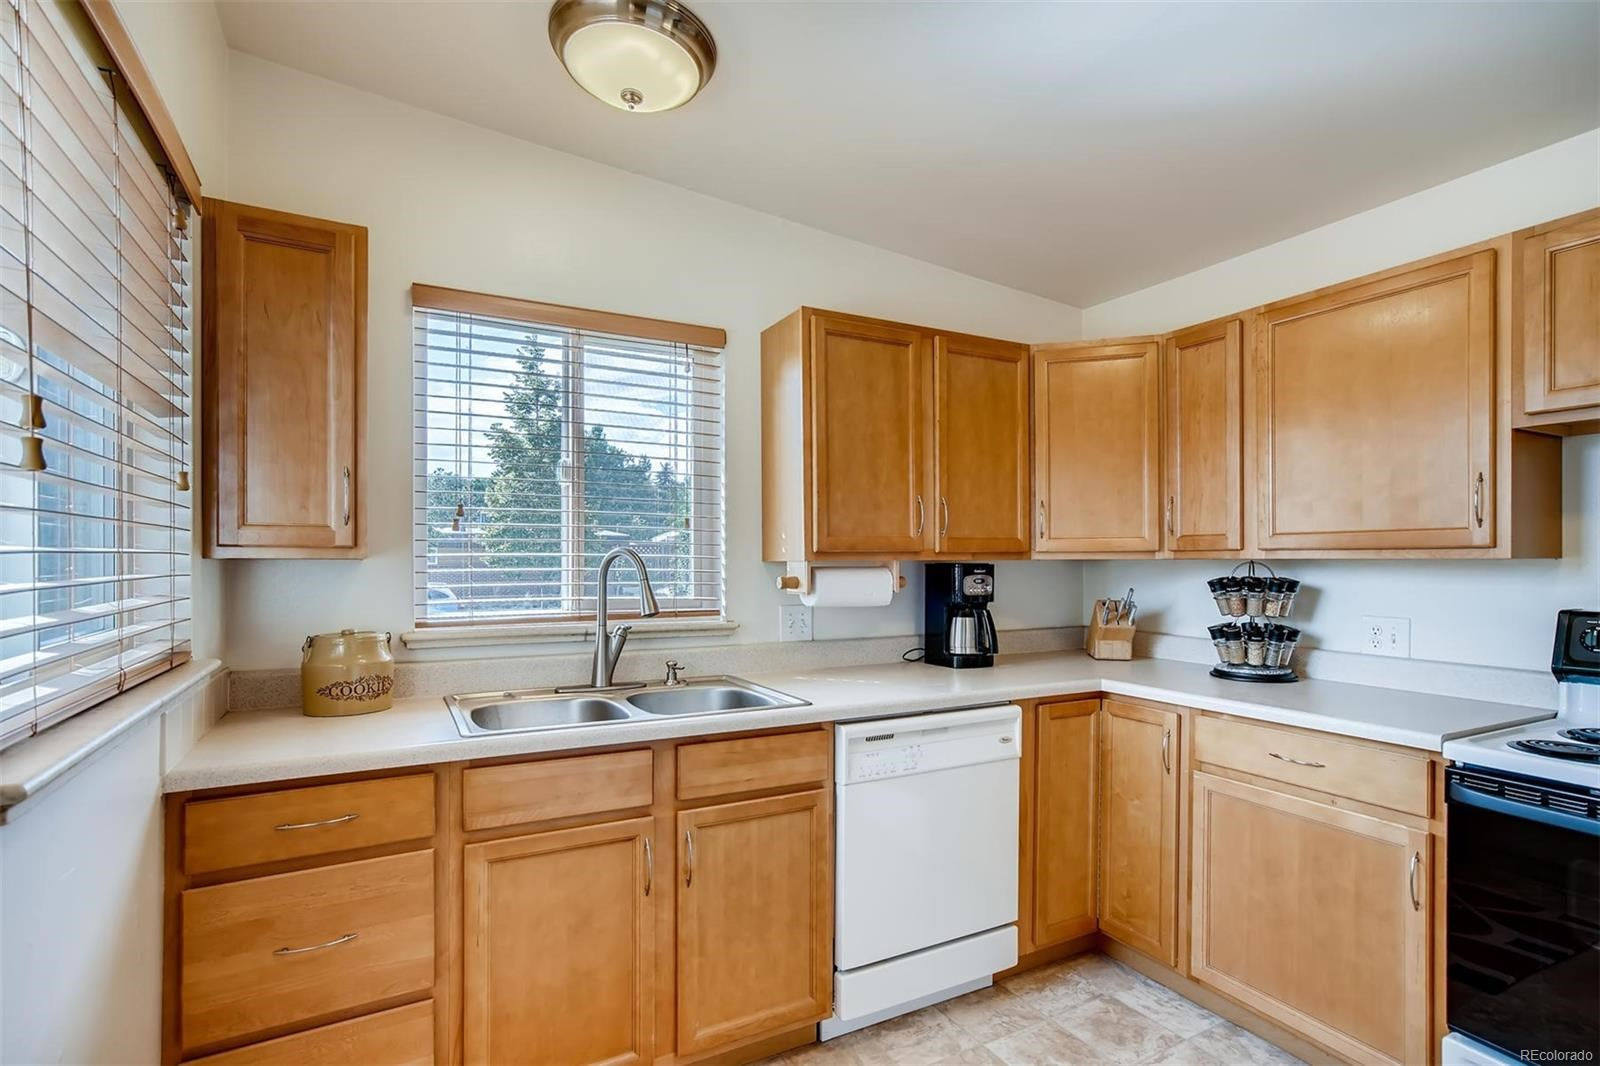 MLS# 4109118 - 8 - 5970 Dudley Court, Arvada, CO 80004